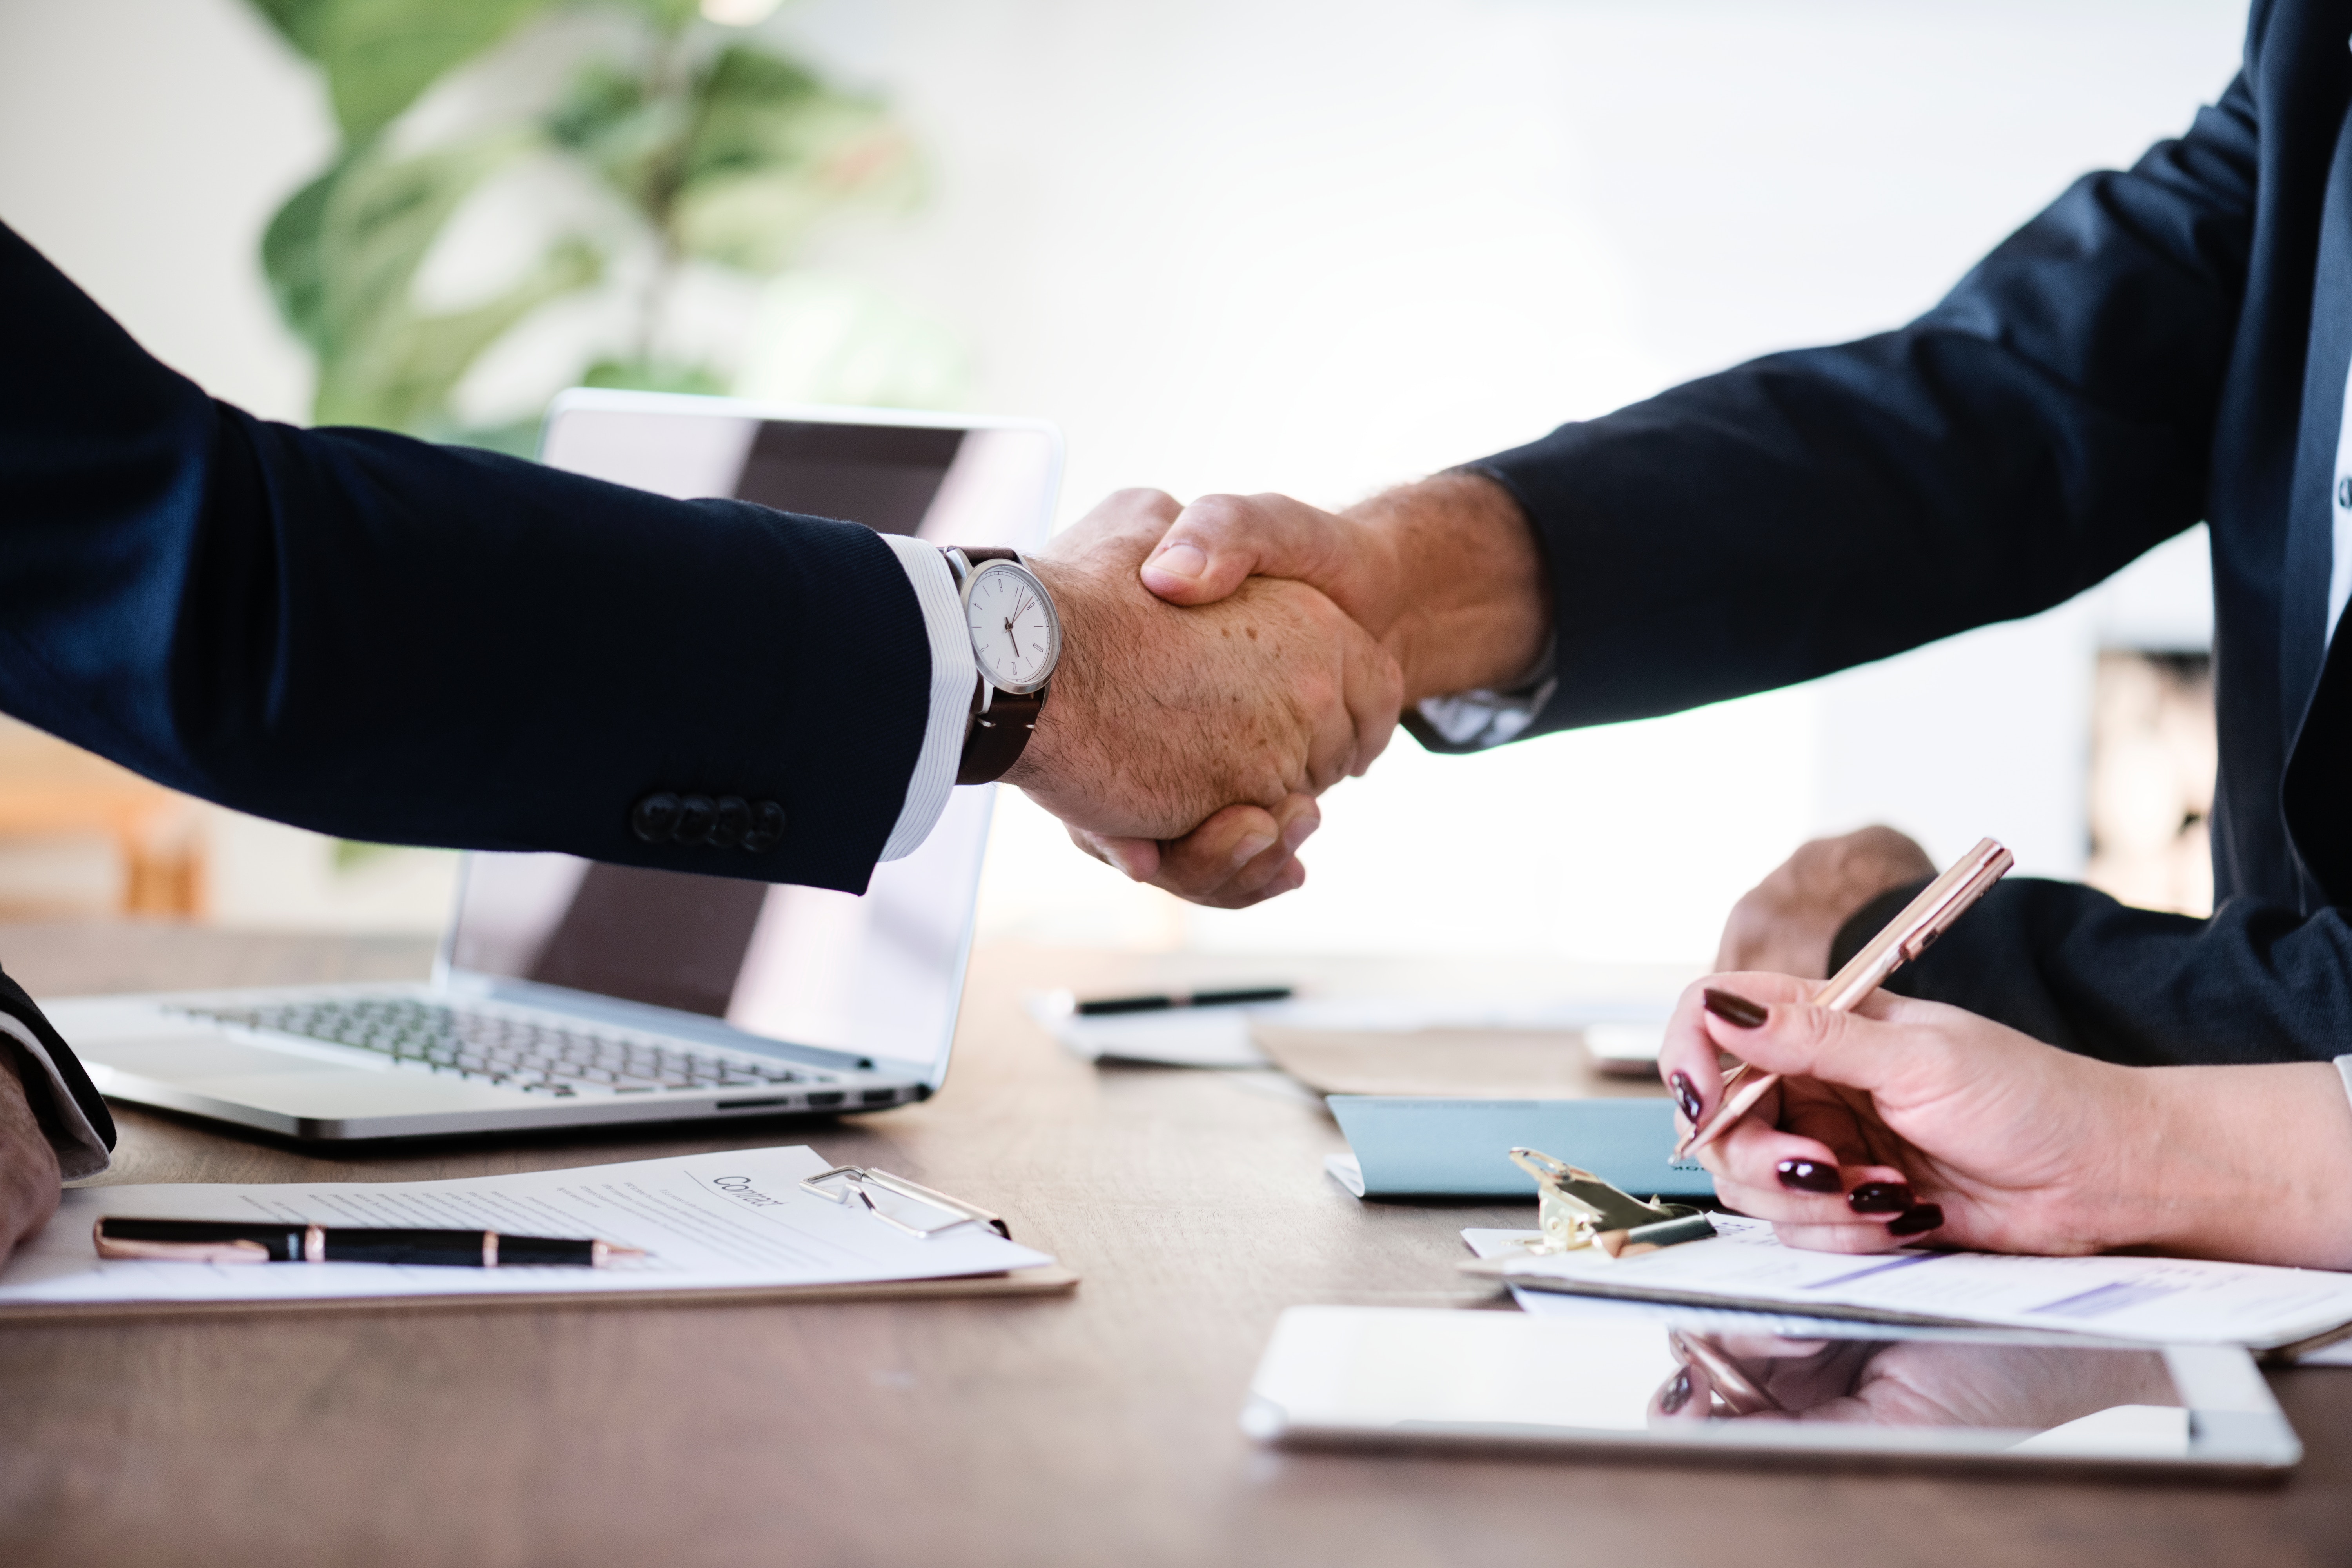 a professional handshake for a new job